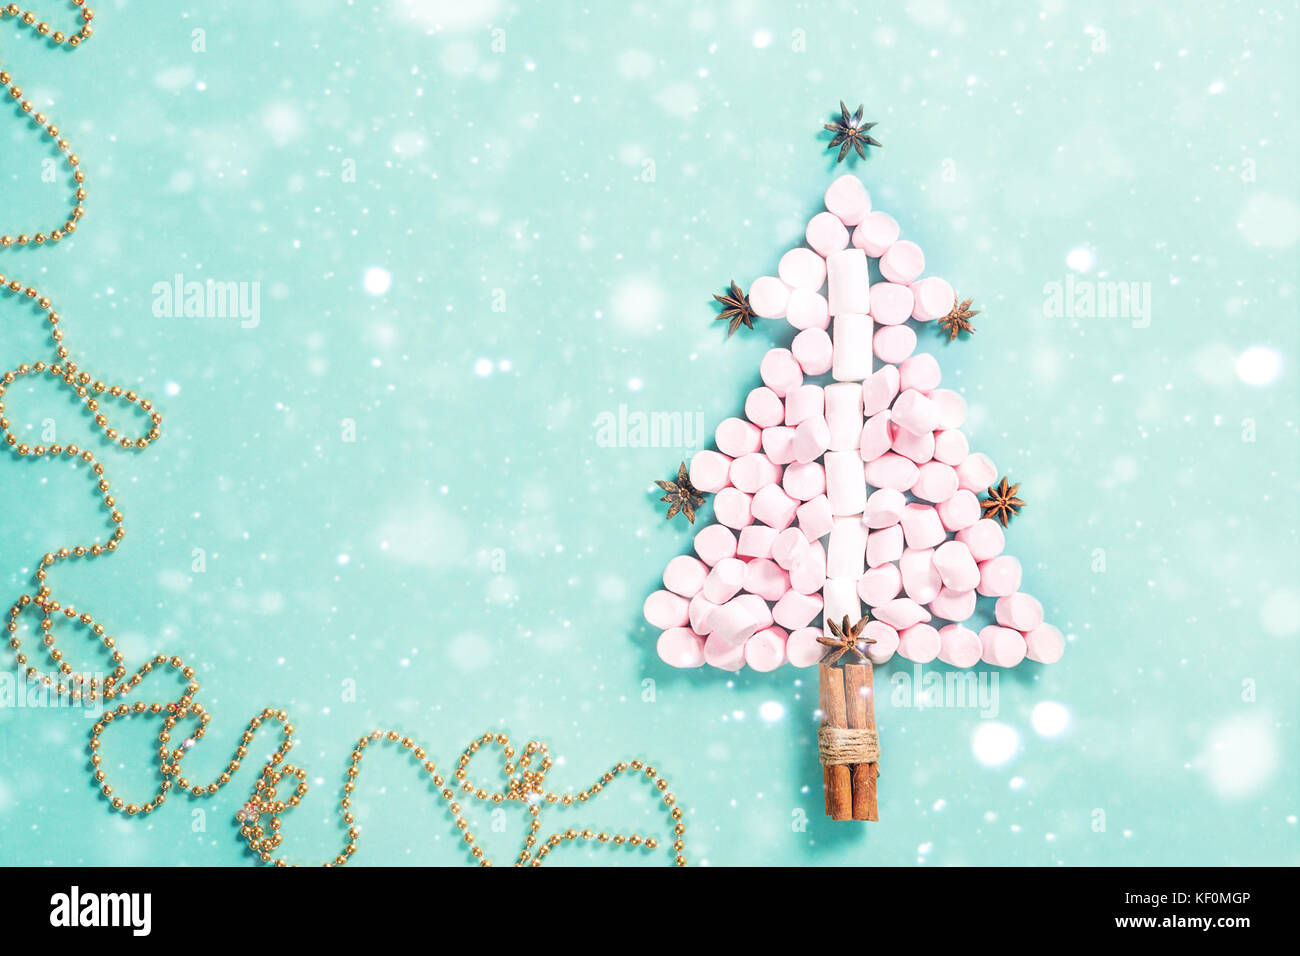 Fir Tree Silhouette From Pink Marshmallows On Blue Background Christmas Concept New Year Holiday